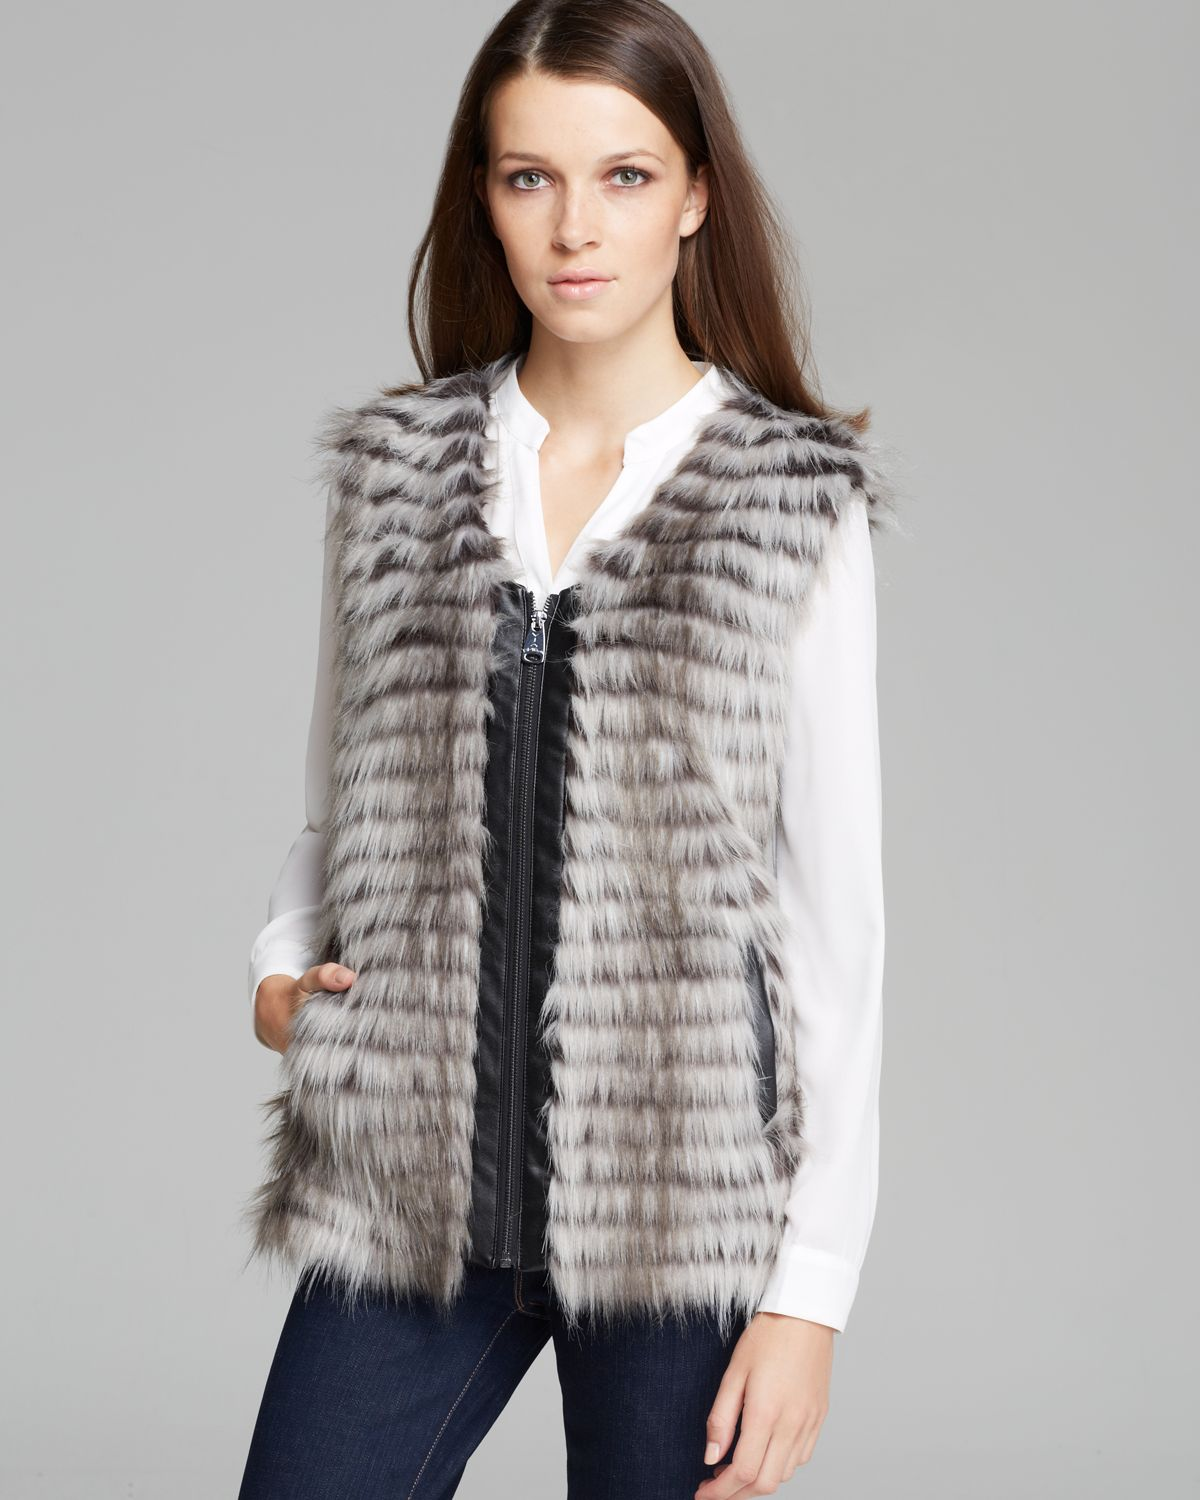 Via Spiga Parma Collarless Faux Fur Vest | Bloomingdale's